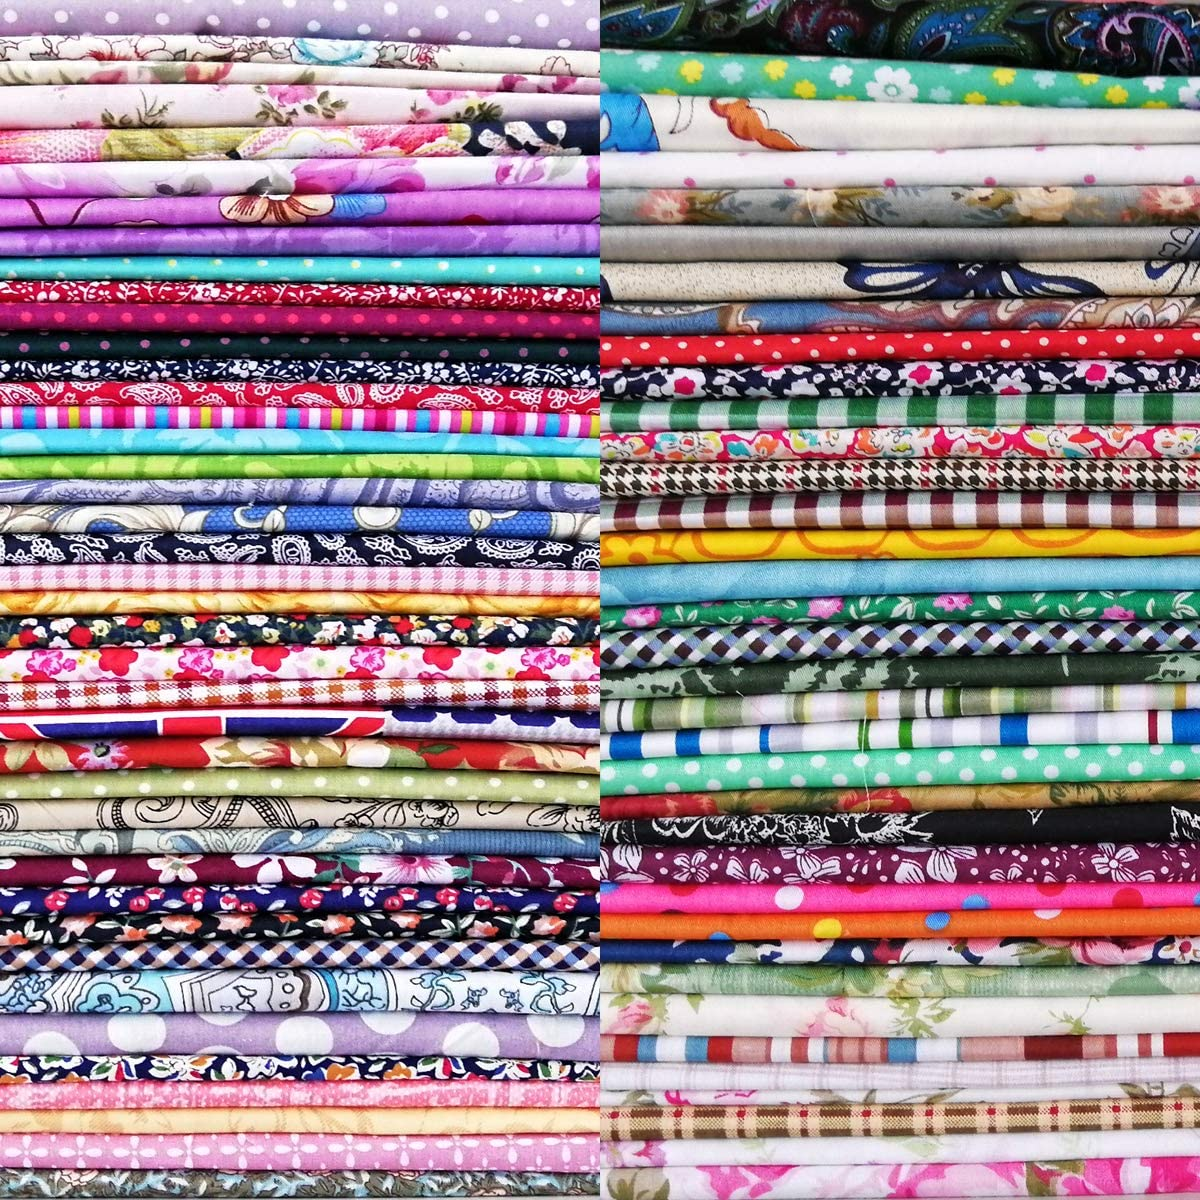 8 x 8 50 PCS 100% Cotton Fabric Bundles for Quilting Sewing DIY & Quilt Beginners, Quilting Supplies Fabric Squares